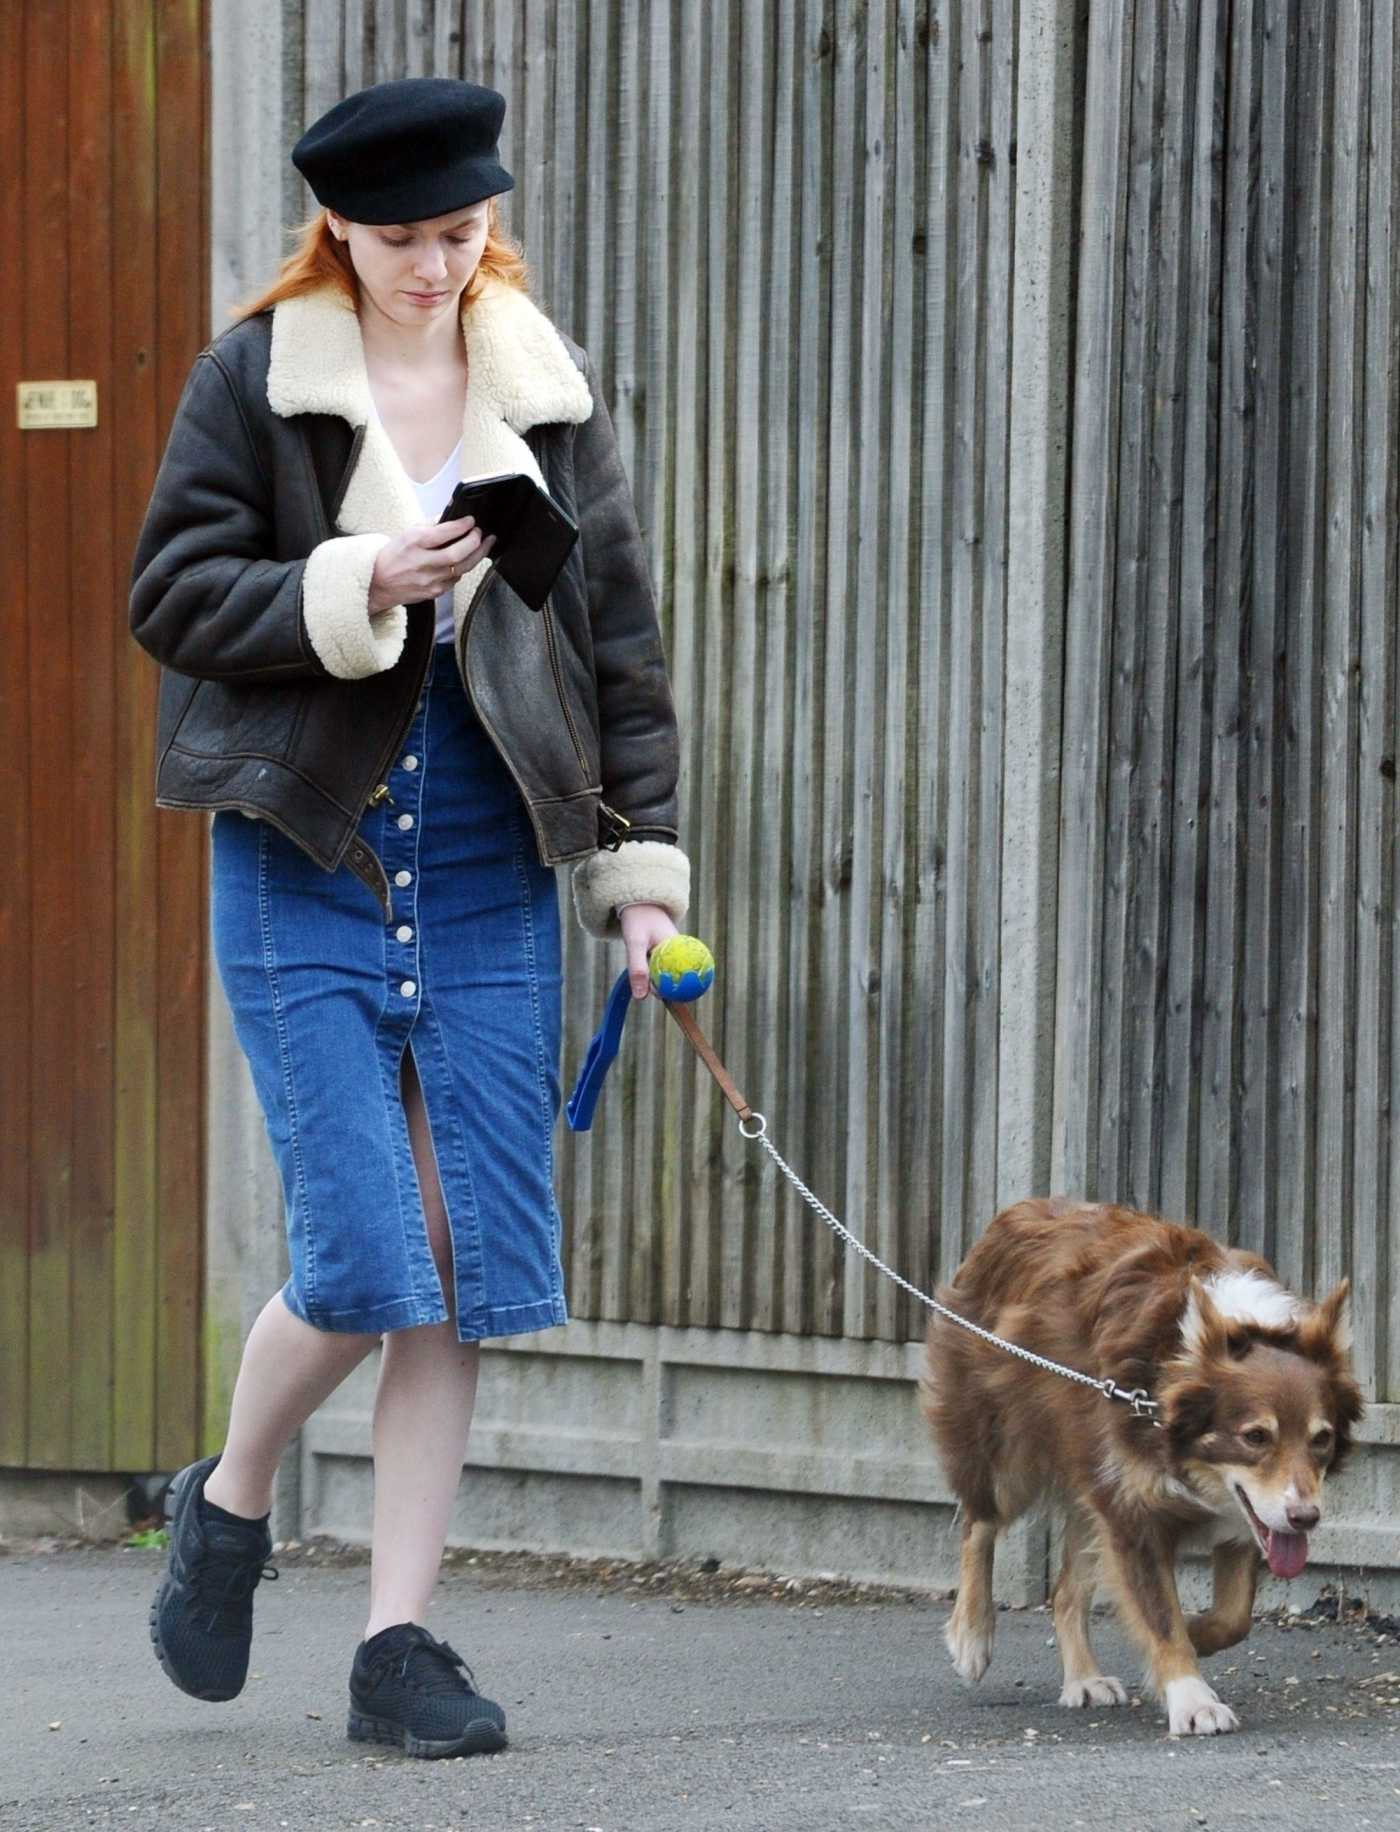 Eleanor Tomlinson in a Black Cap Was Seen Out with Her Dog in the Park in London 03/29/2019